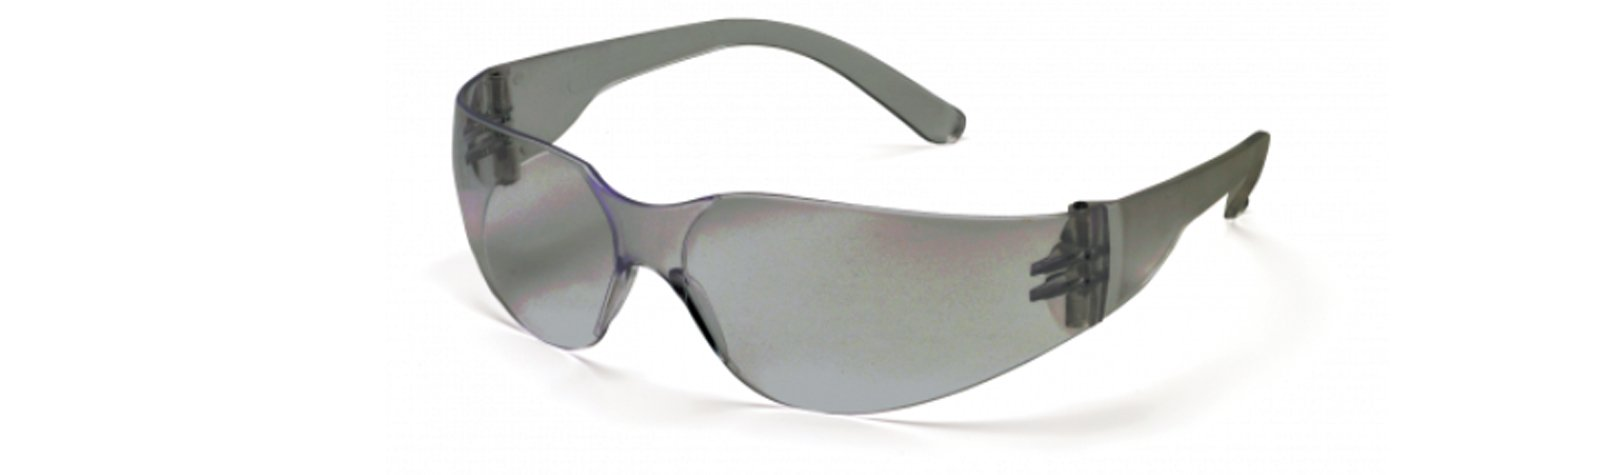 Safety Glasses – A Jobsite Necessity.